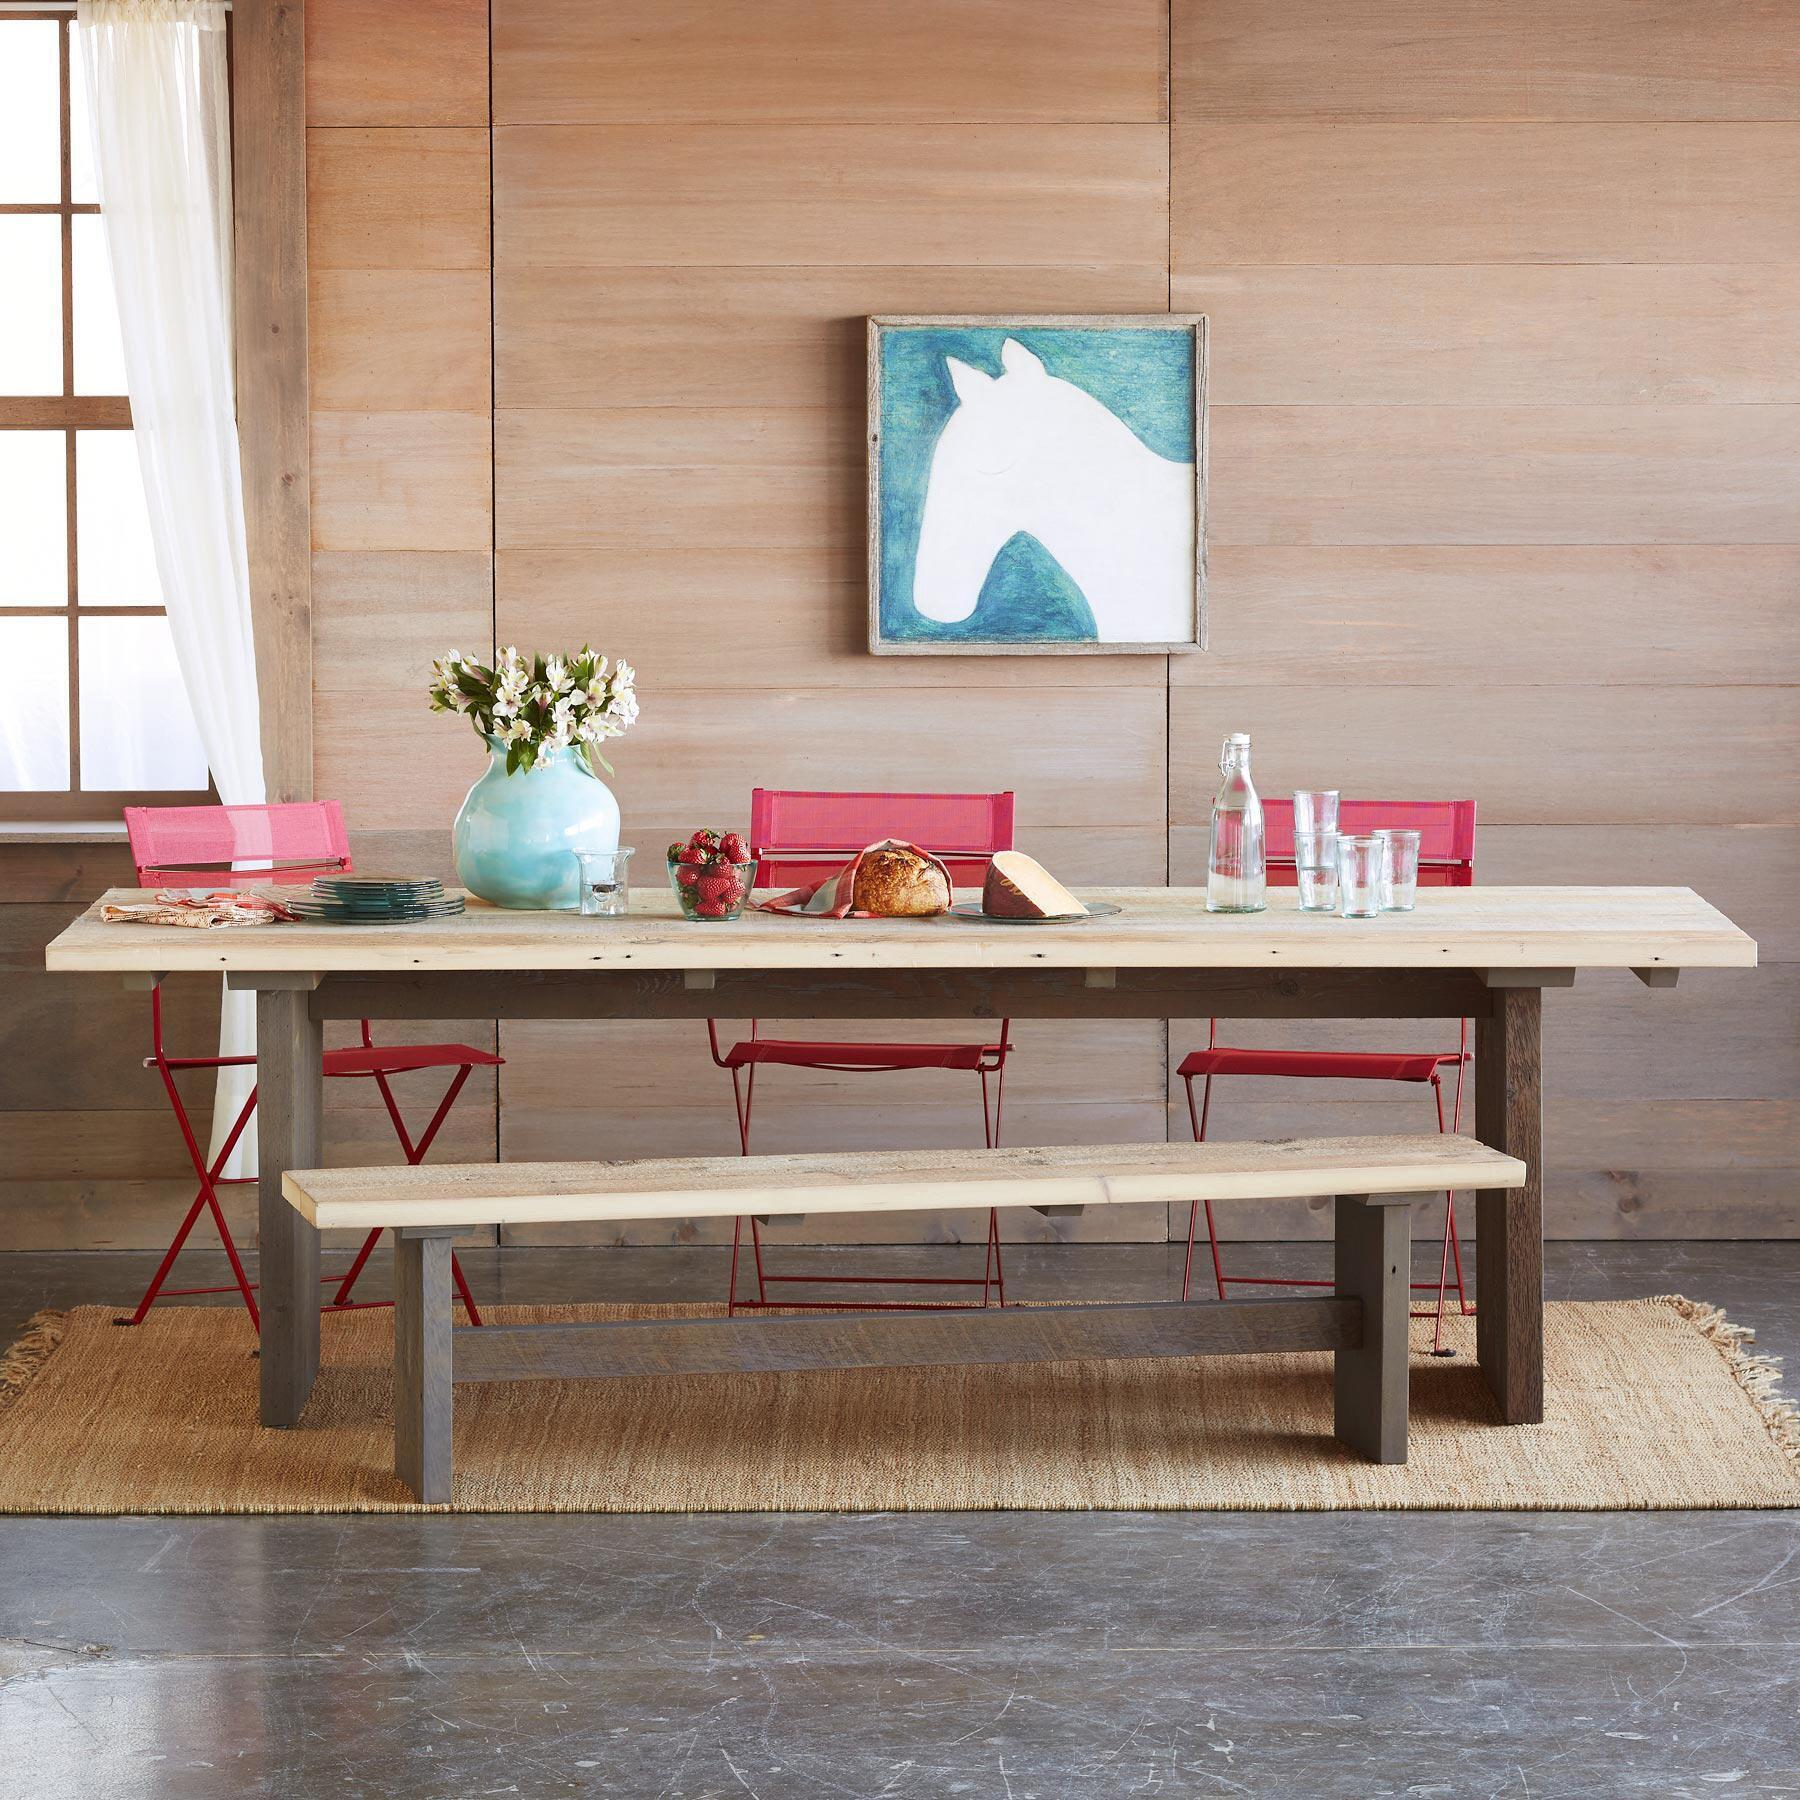 STEWART FALLS OUTDOOR DINING TABLE: View 4